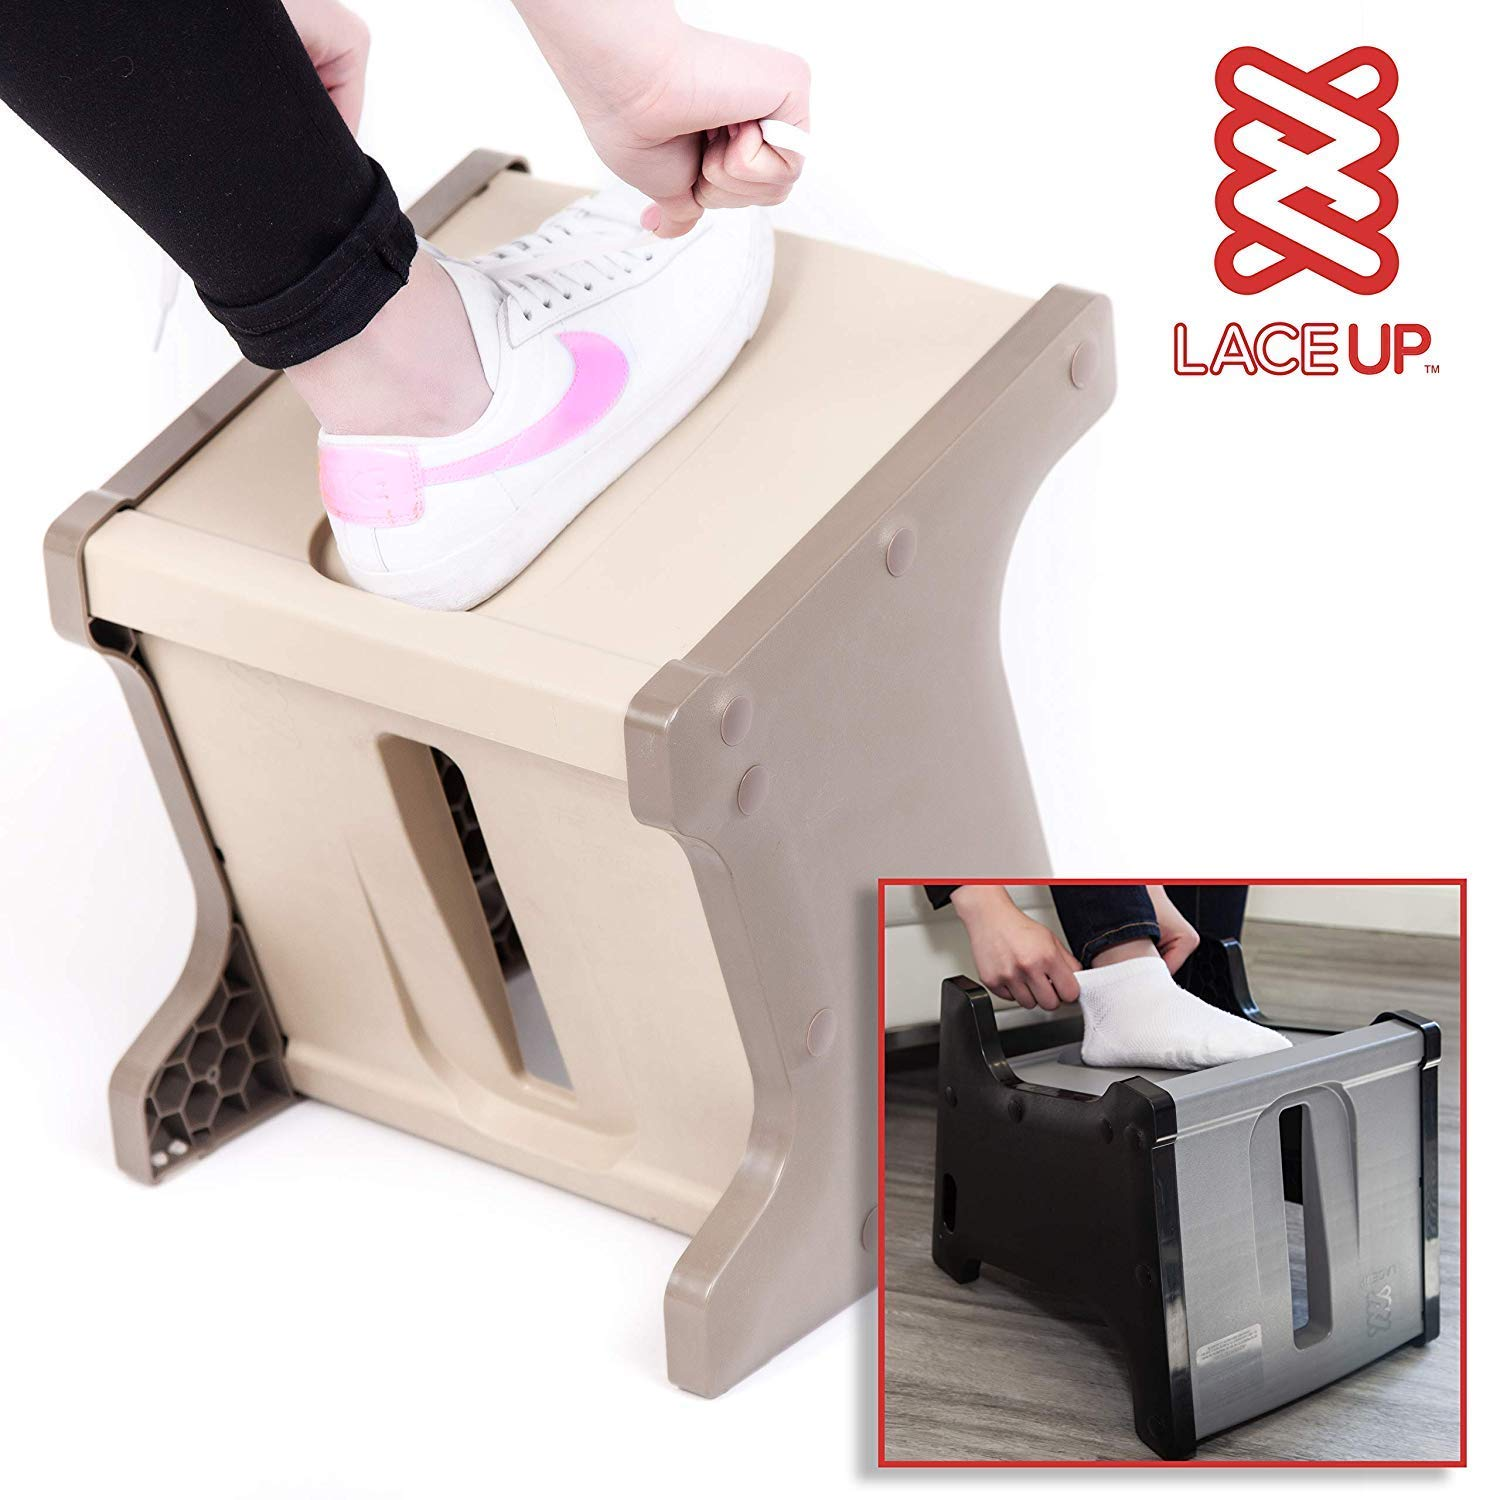 Practice Good Ergonomics with LaceUP . Makes Lacing up your foot wear easy. Don't bend over. Hip Replacement recovery. Mobility Aid. Footcare/pedicure. Sock Aid! Brings your foot within reach